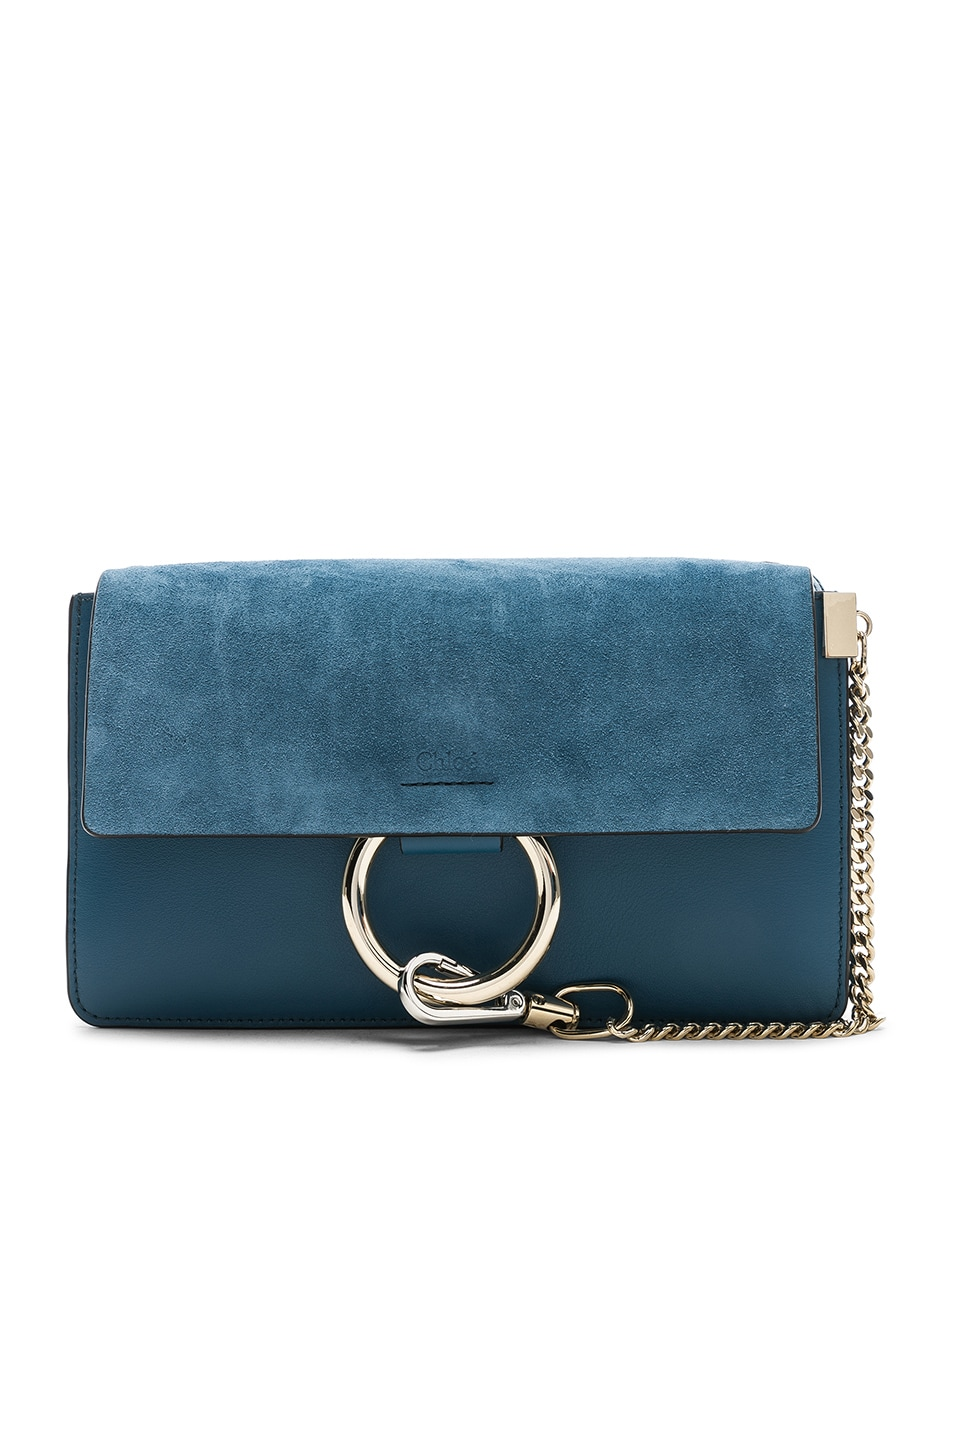 Image 1 of Chloe Small Faye Suede & Calfskin Shoulder Bag in Vinyl Blue